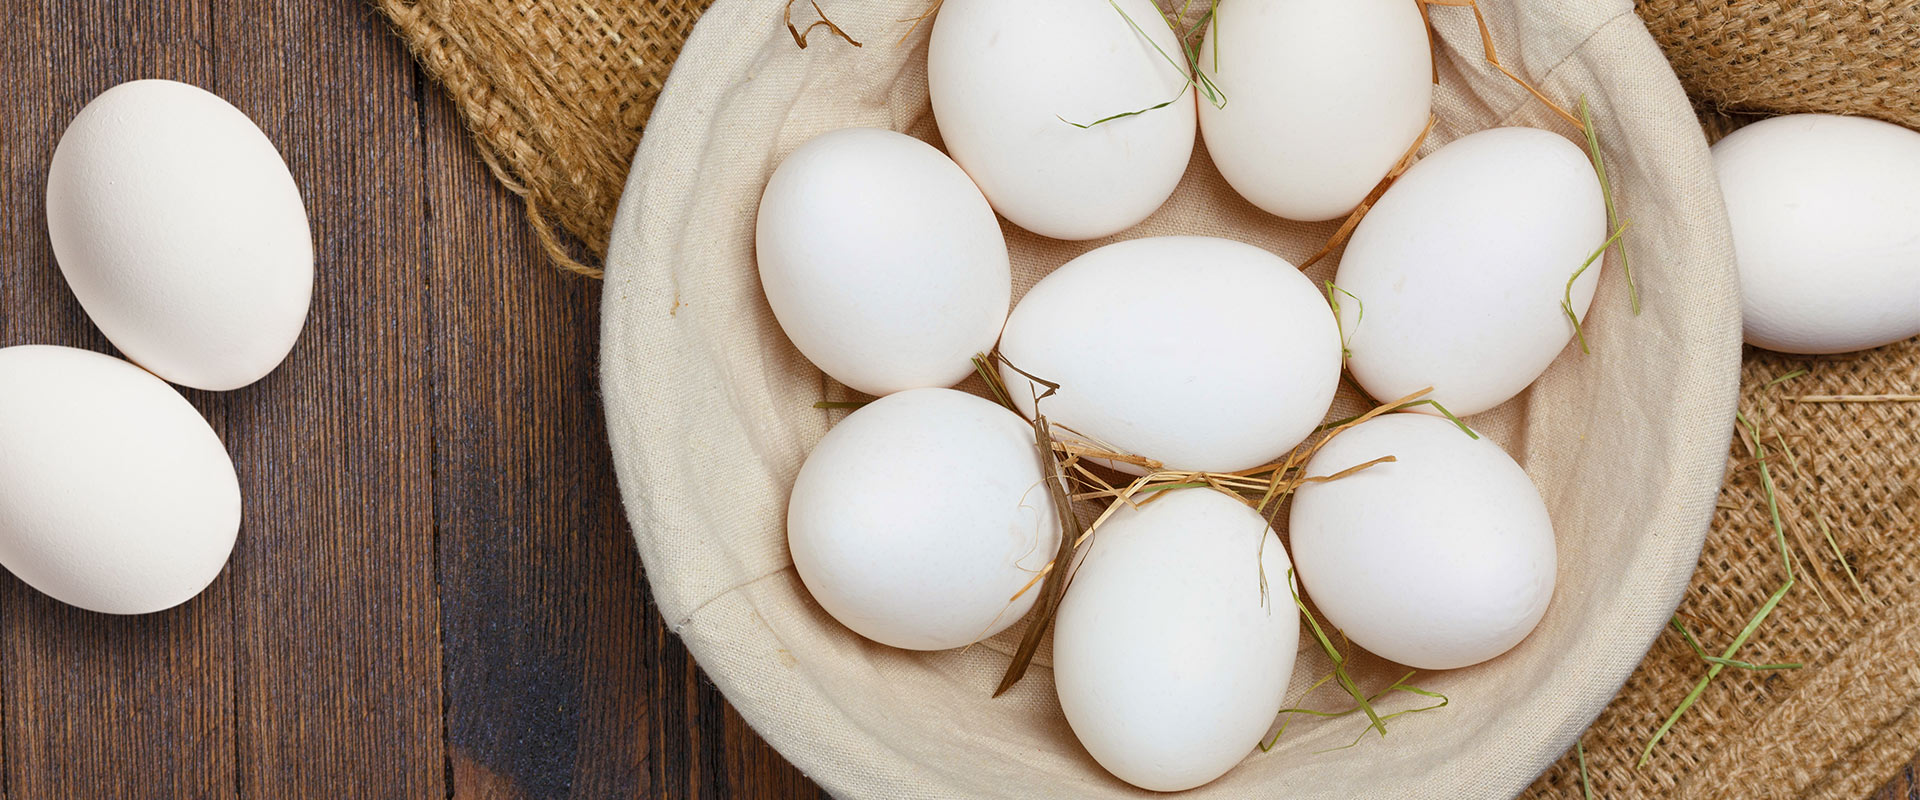 Learn about the benefits of nutritious eggs